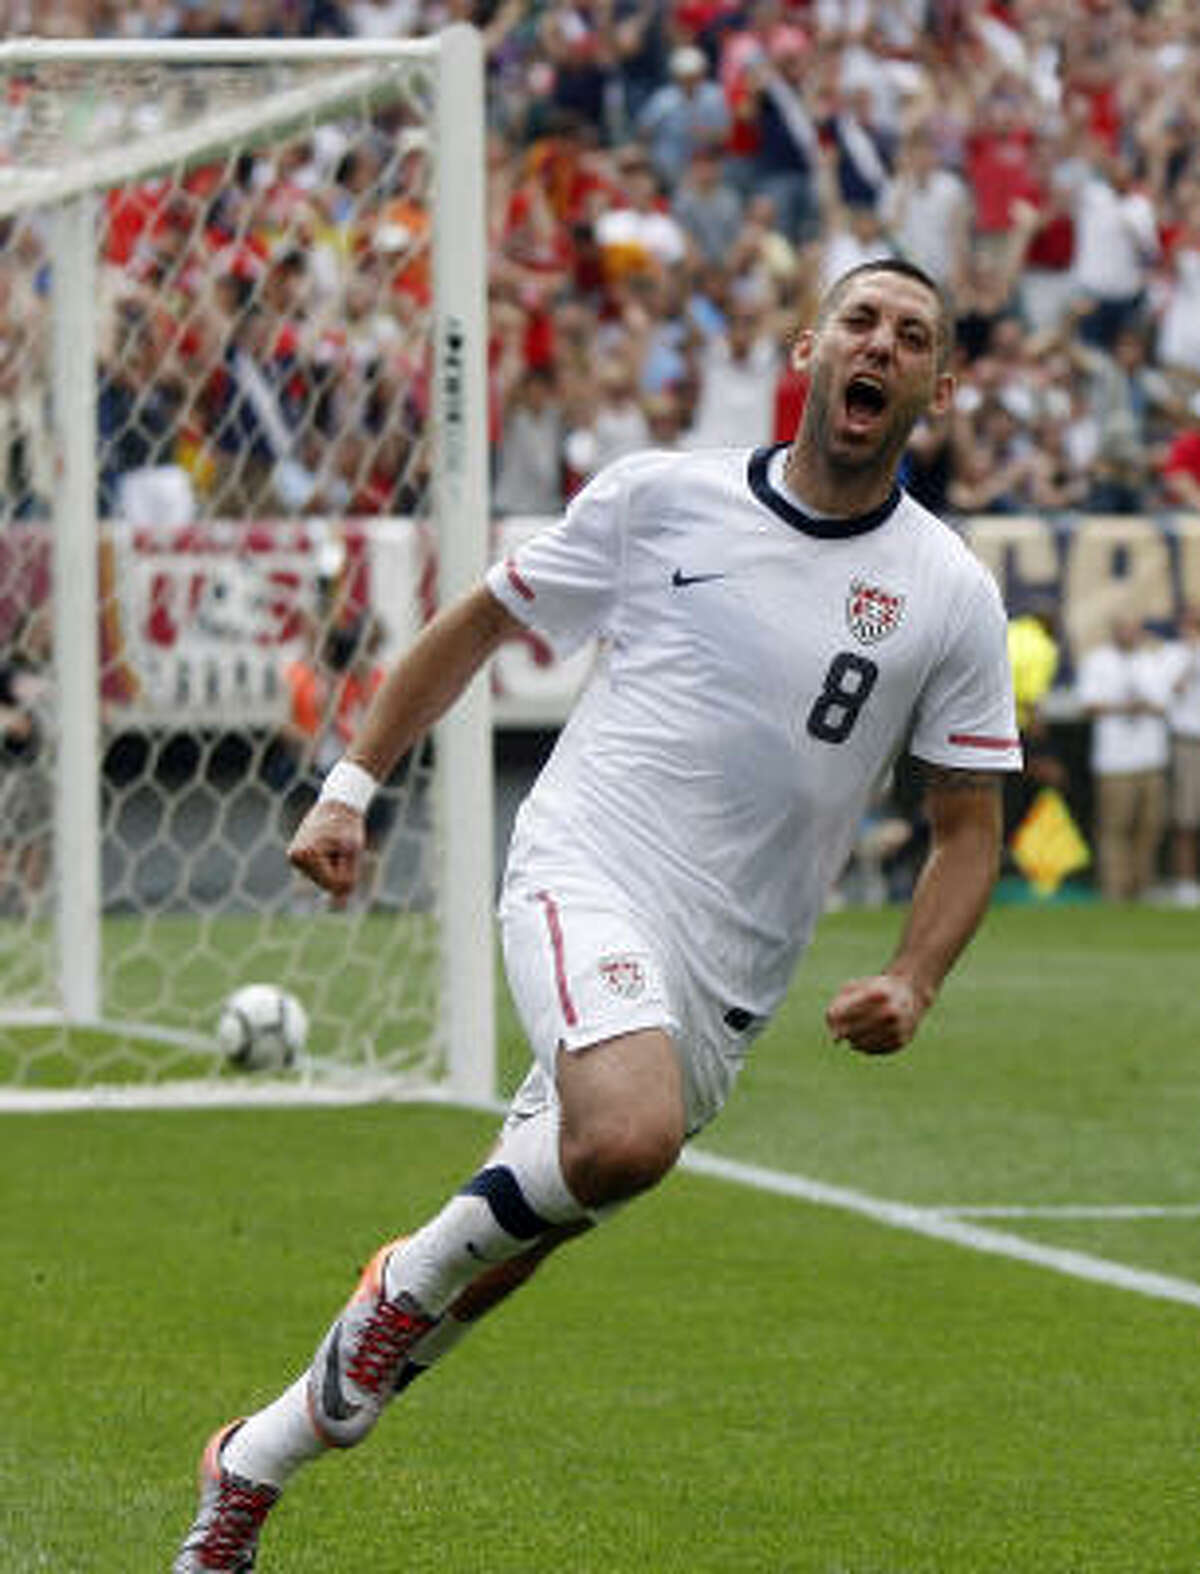 United States' Clint Dempsey celebrates his game-winning goal during the second half of a World Cup warmup soccer match against Turkey.